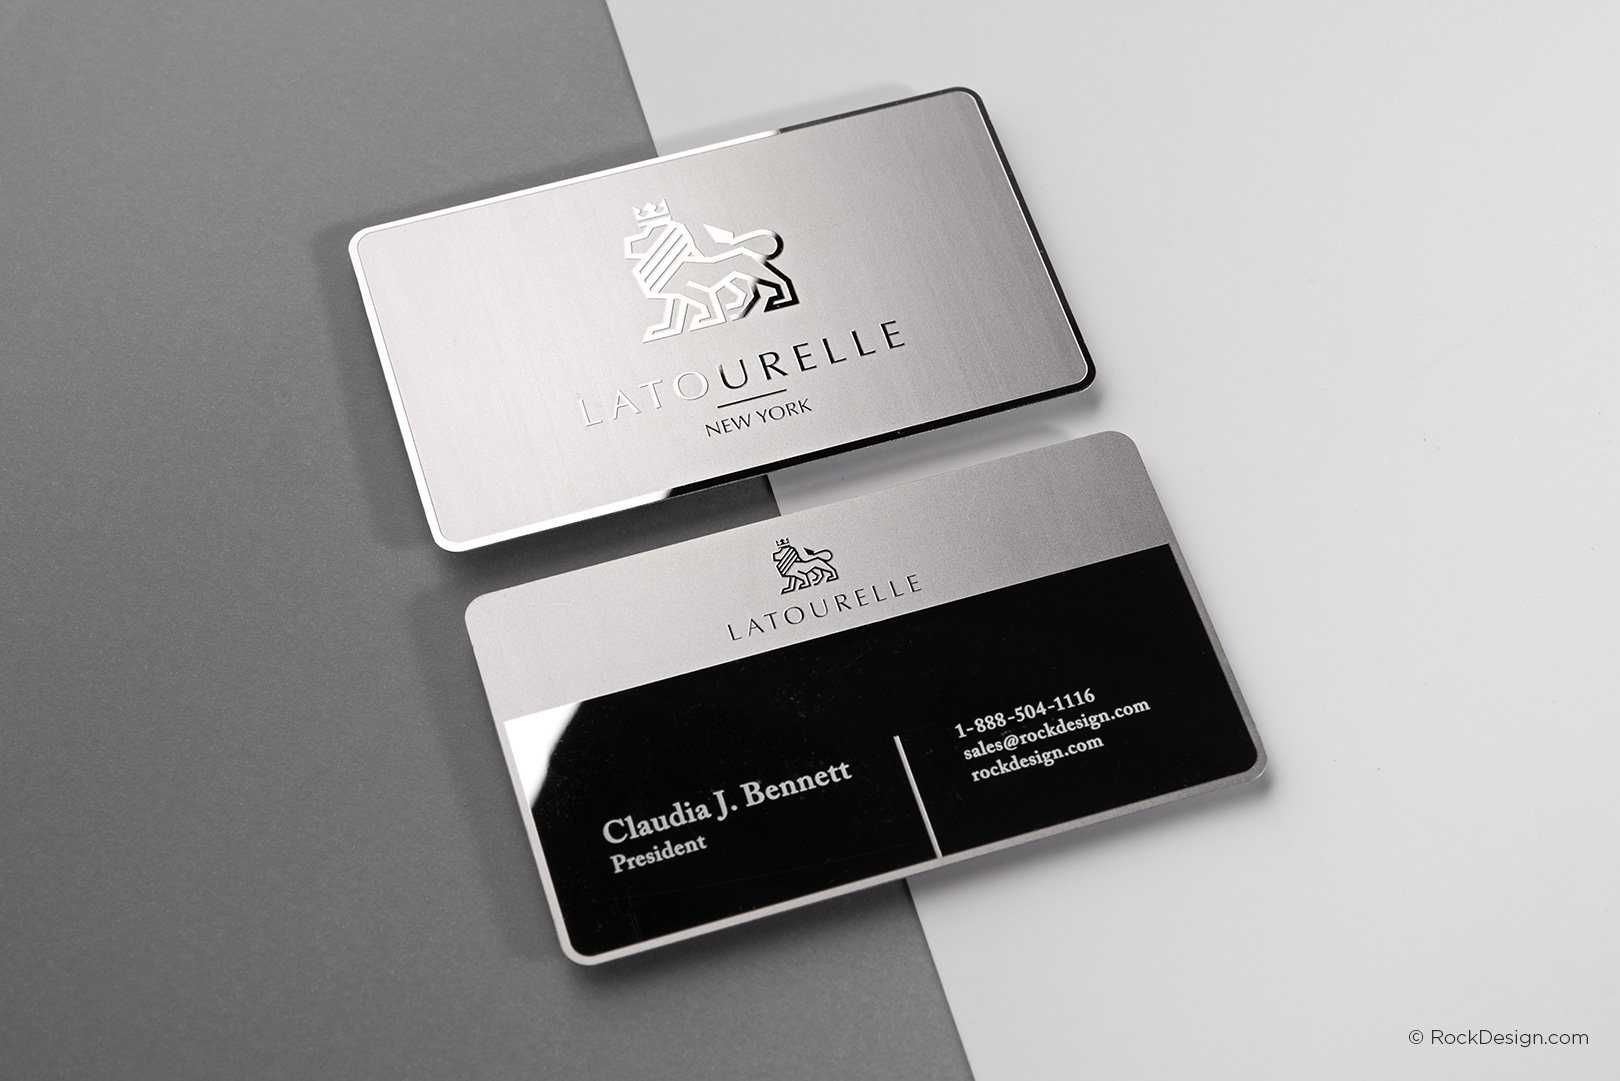 Free Lawyer Business Card Template | Rockdesign Throughout Legal Business Cards Templates Free